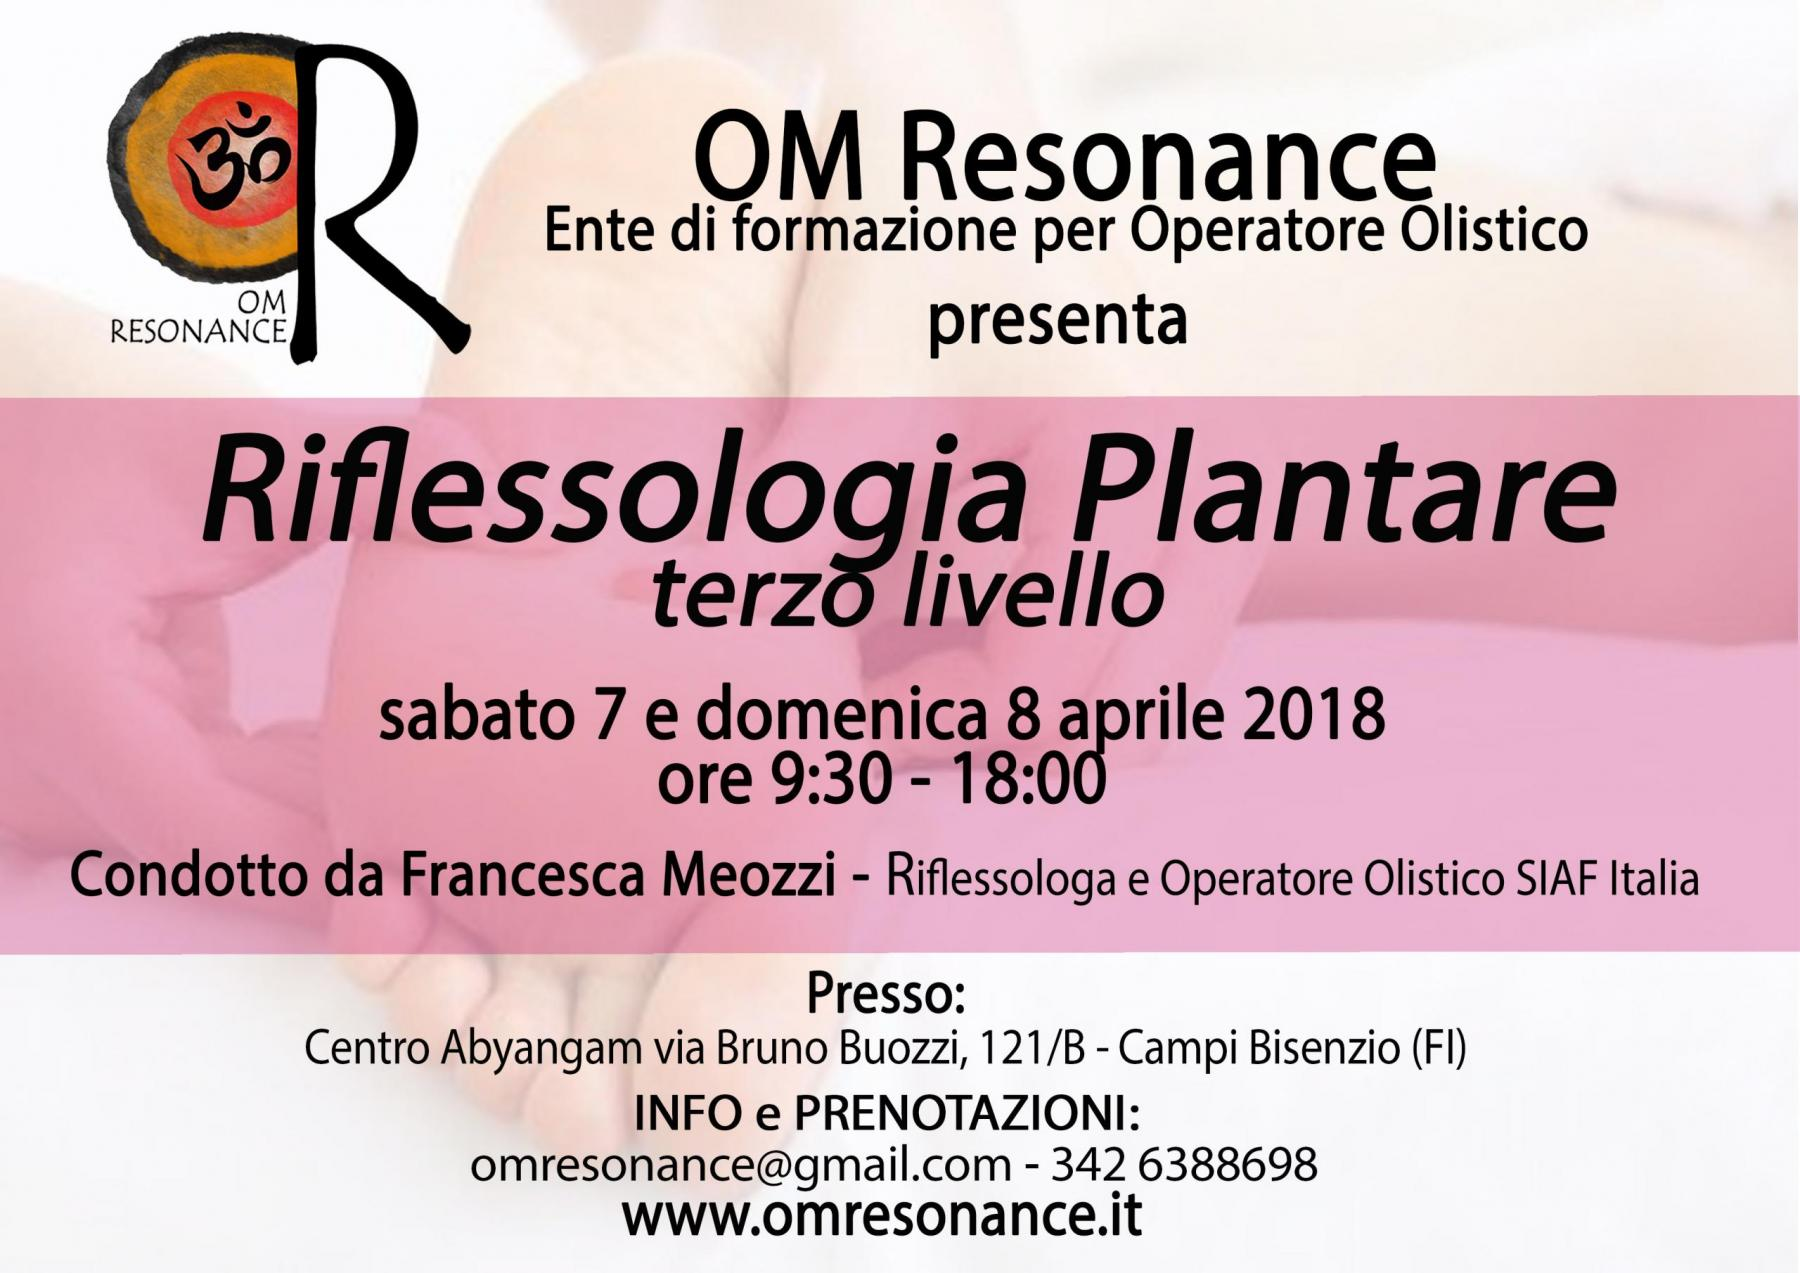 riflessologia plantare 3 livello Francesca Meozzi om resonance